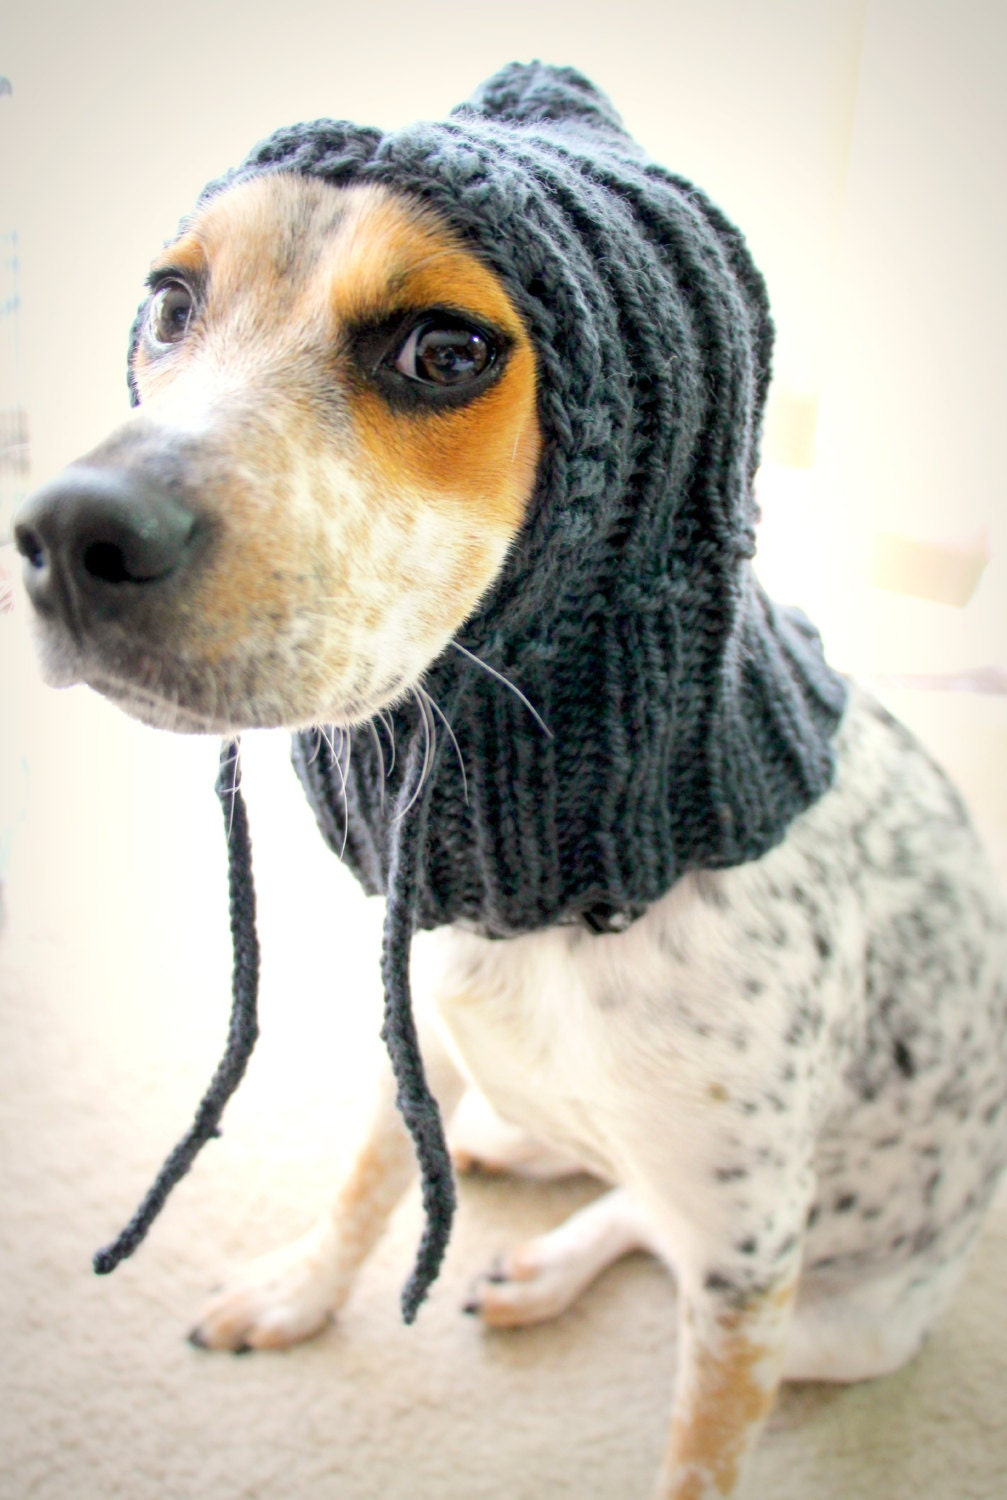 Knitting Patterns For Dogs Hats : Custom knit dog hat dog hoodie pet scarf pet clothes dog